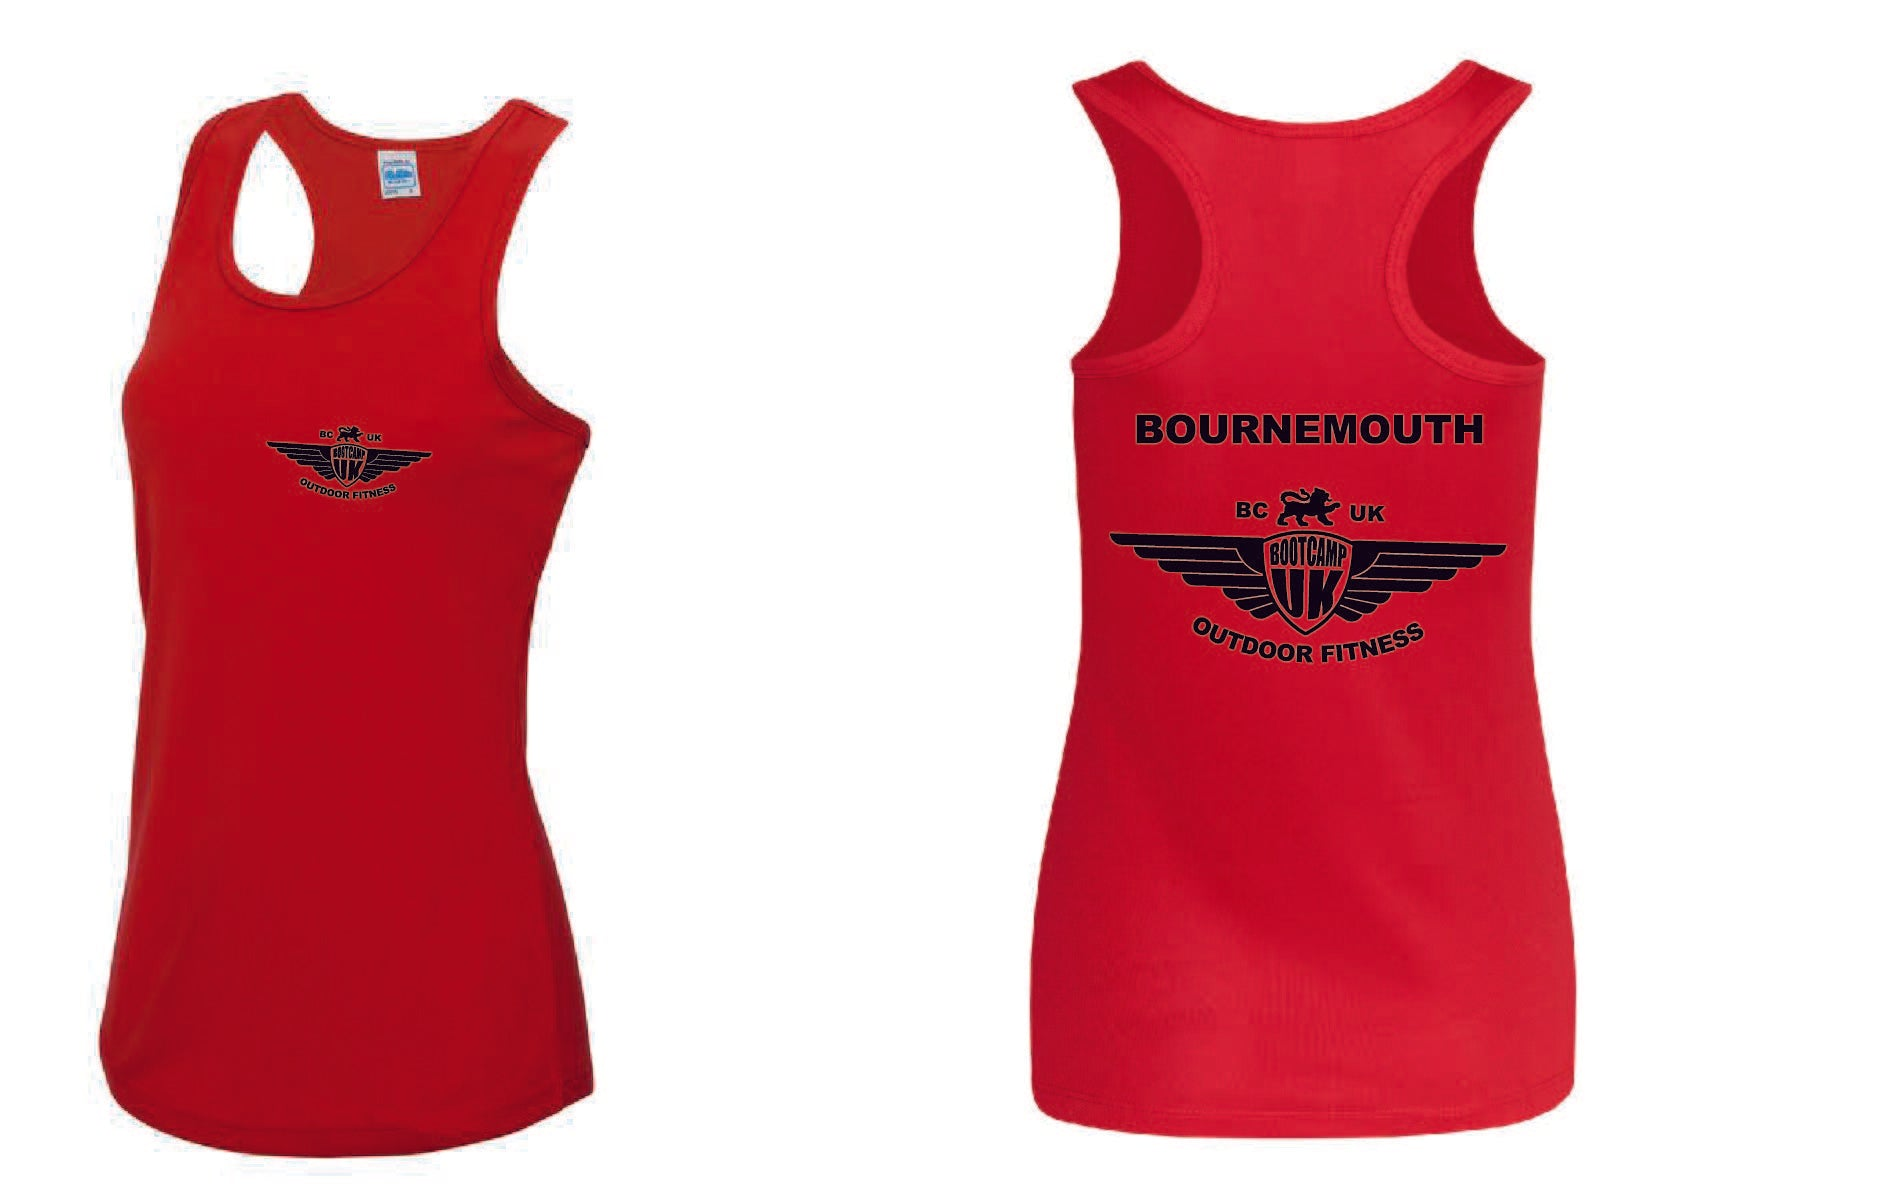 Bournemouth Ladies Vest